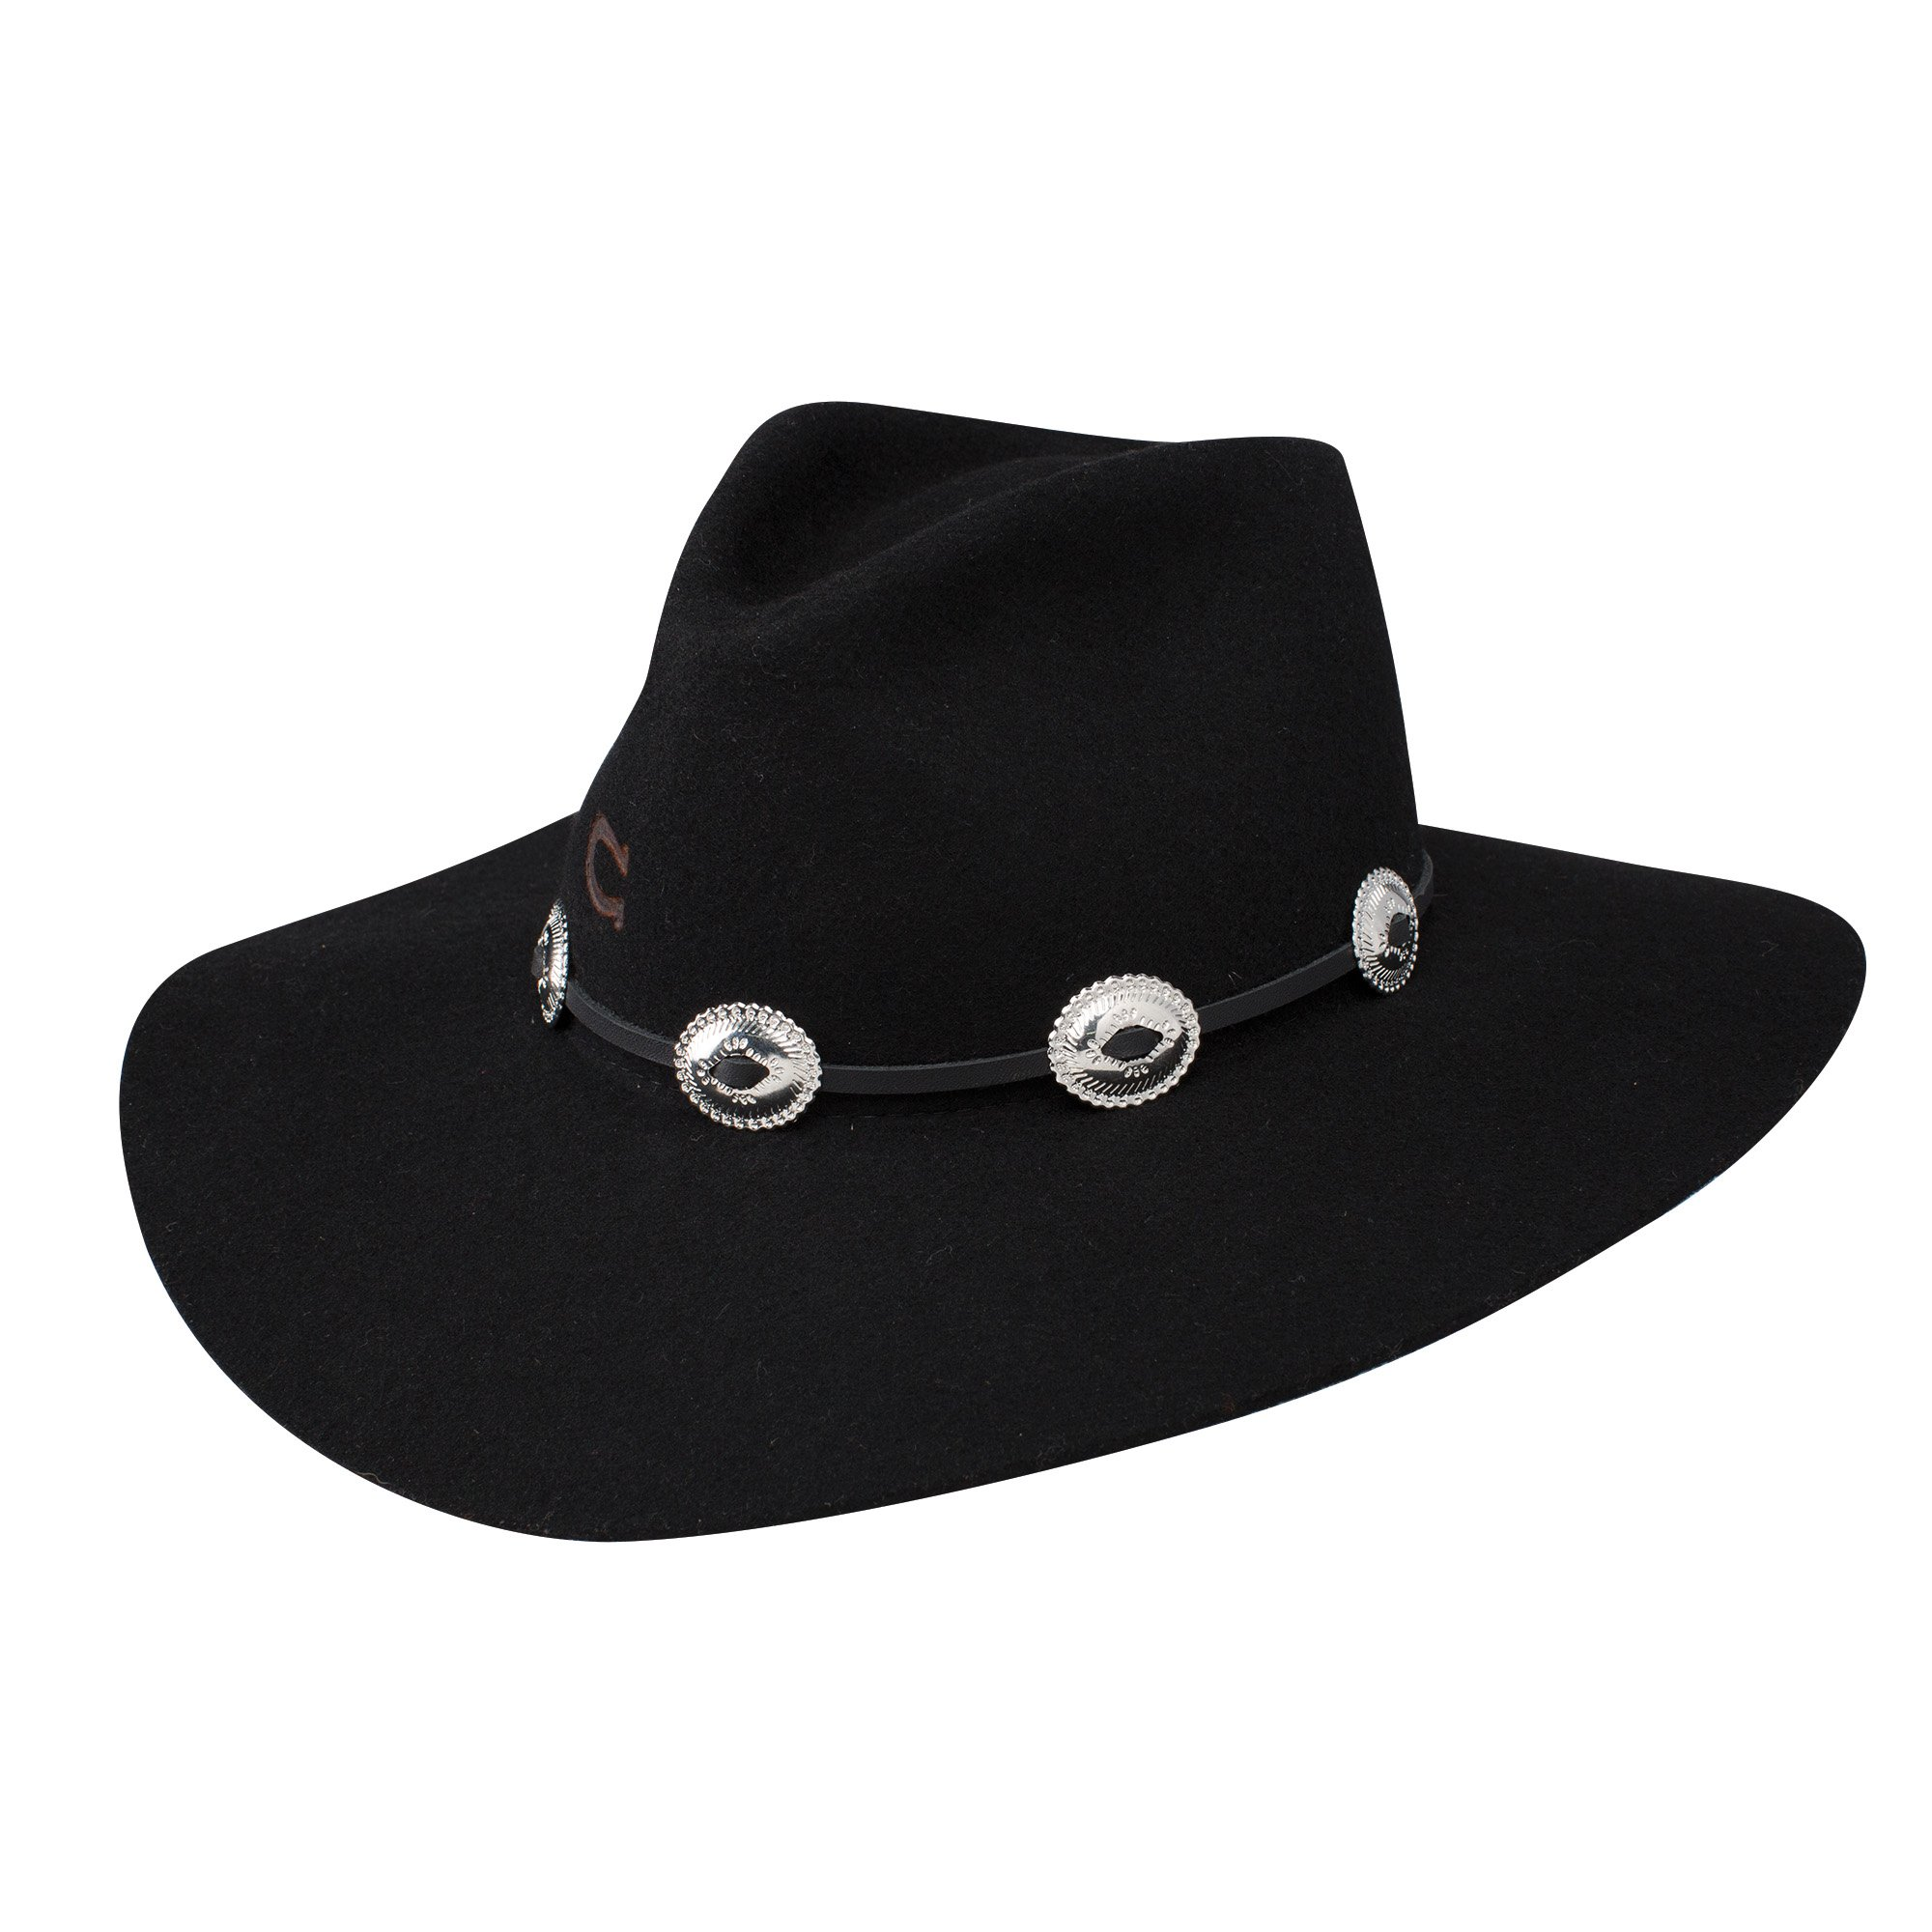 Charlie 1 Horse Traveler - Floppy Cowgirl Hat (Large)